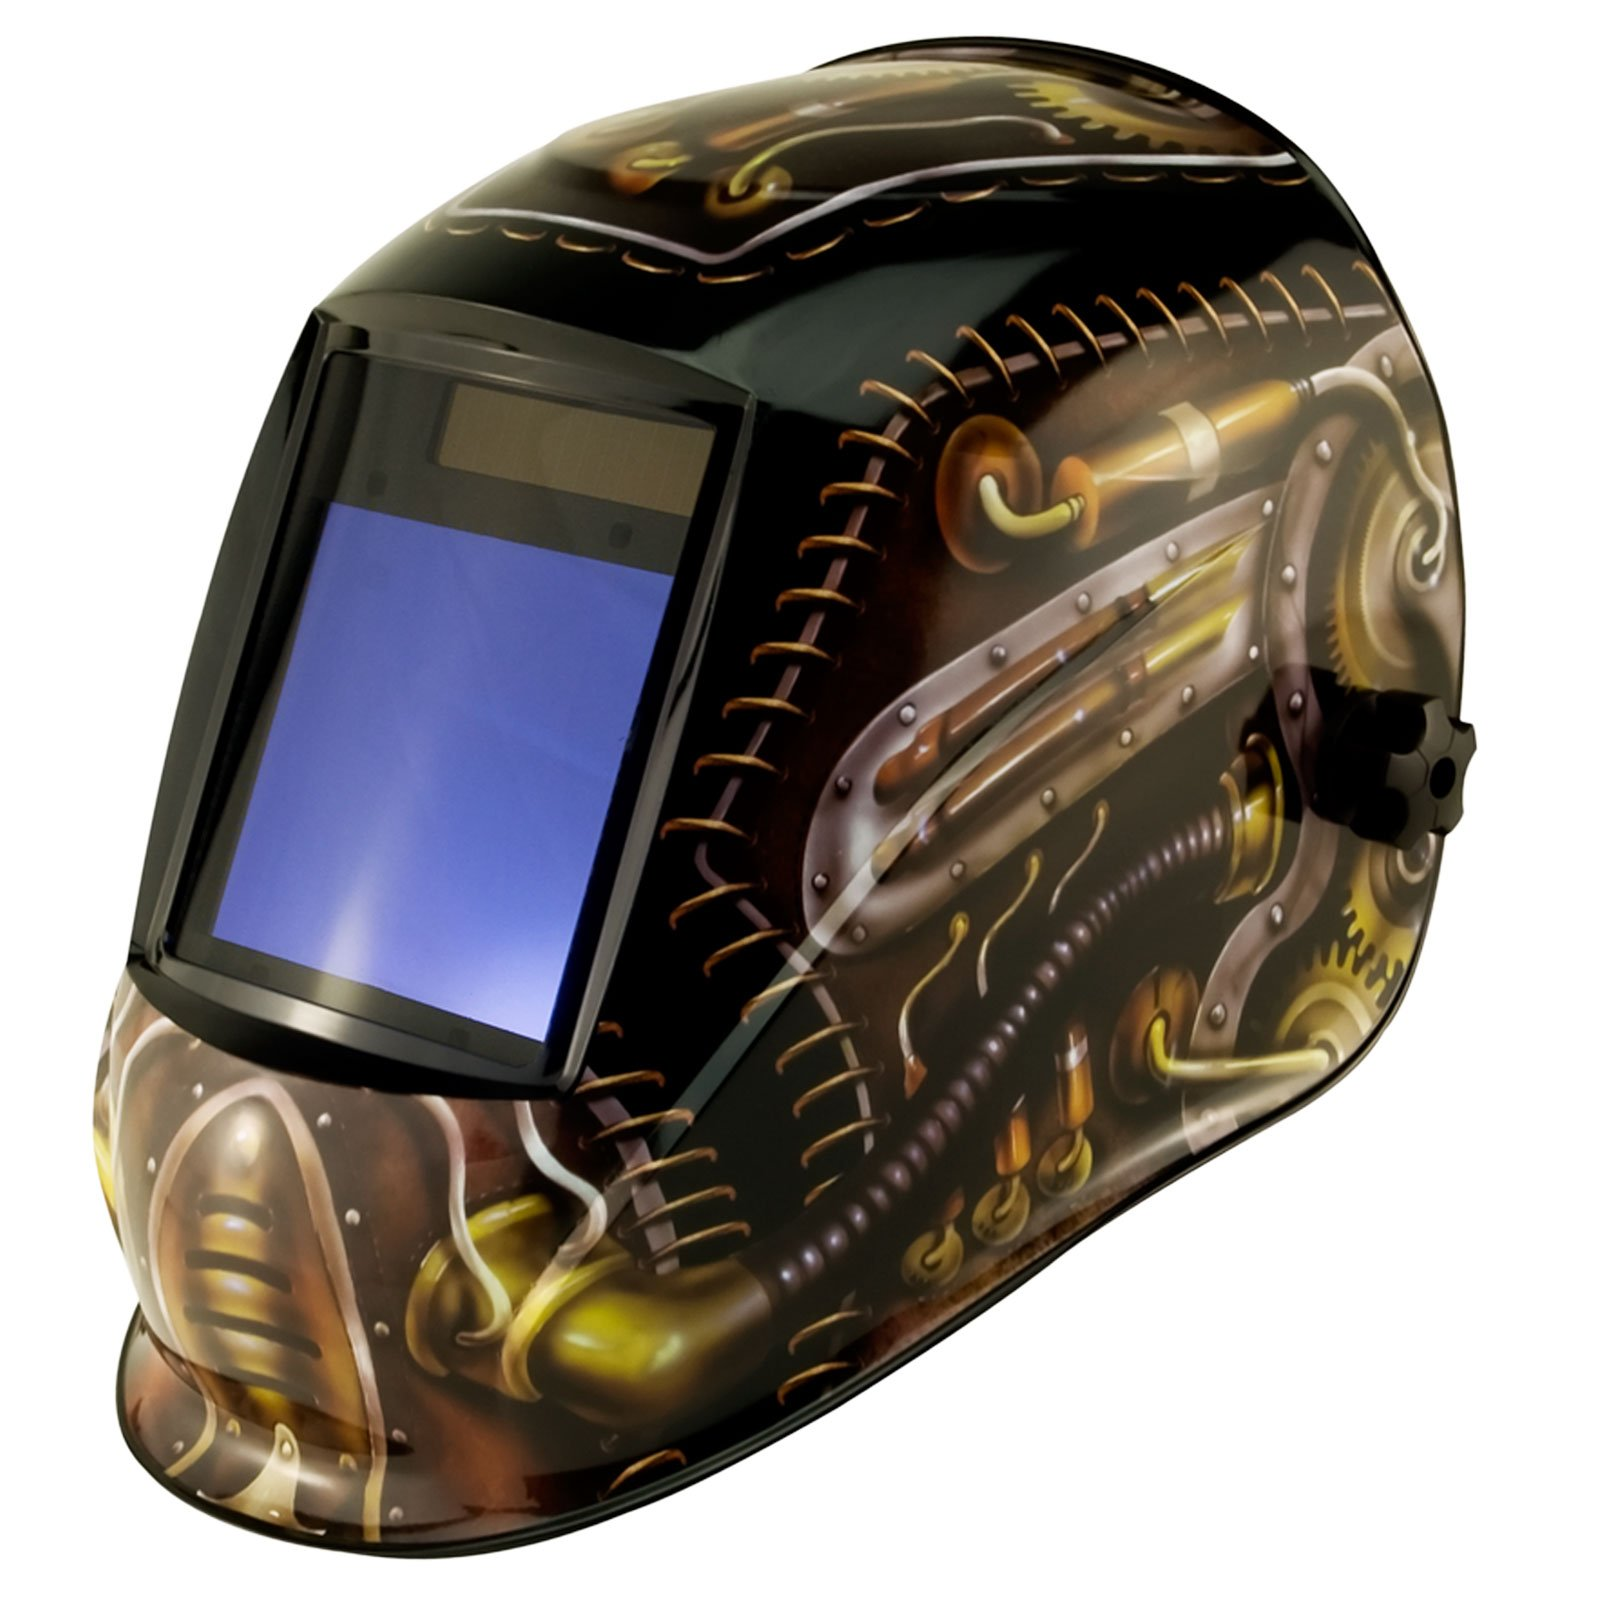 True-Fusion Big-1 Steampunk IQ2000 Solar Powered Auto Darkening Welding Helmet Hood Grind mask with Massive View Area (98mm x 87mm - 3.85x3.45 inches) FREE Storage Bag, Spare Lenses and Spare Sweatband included